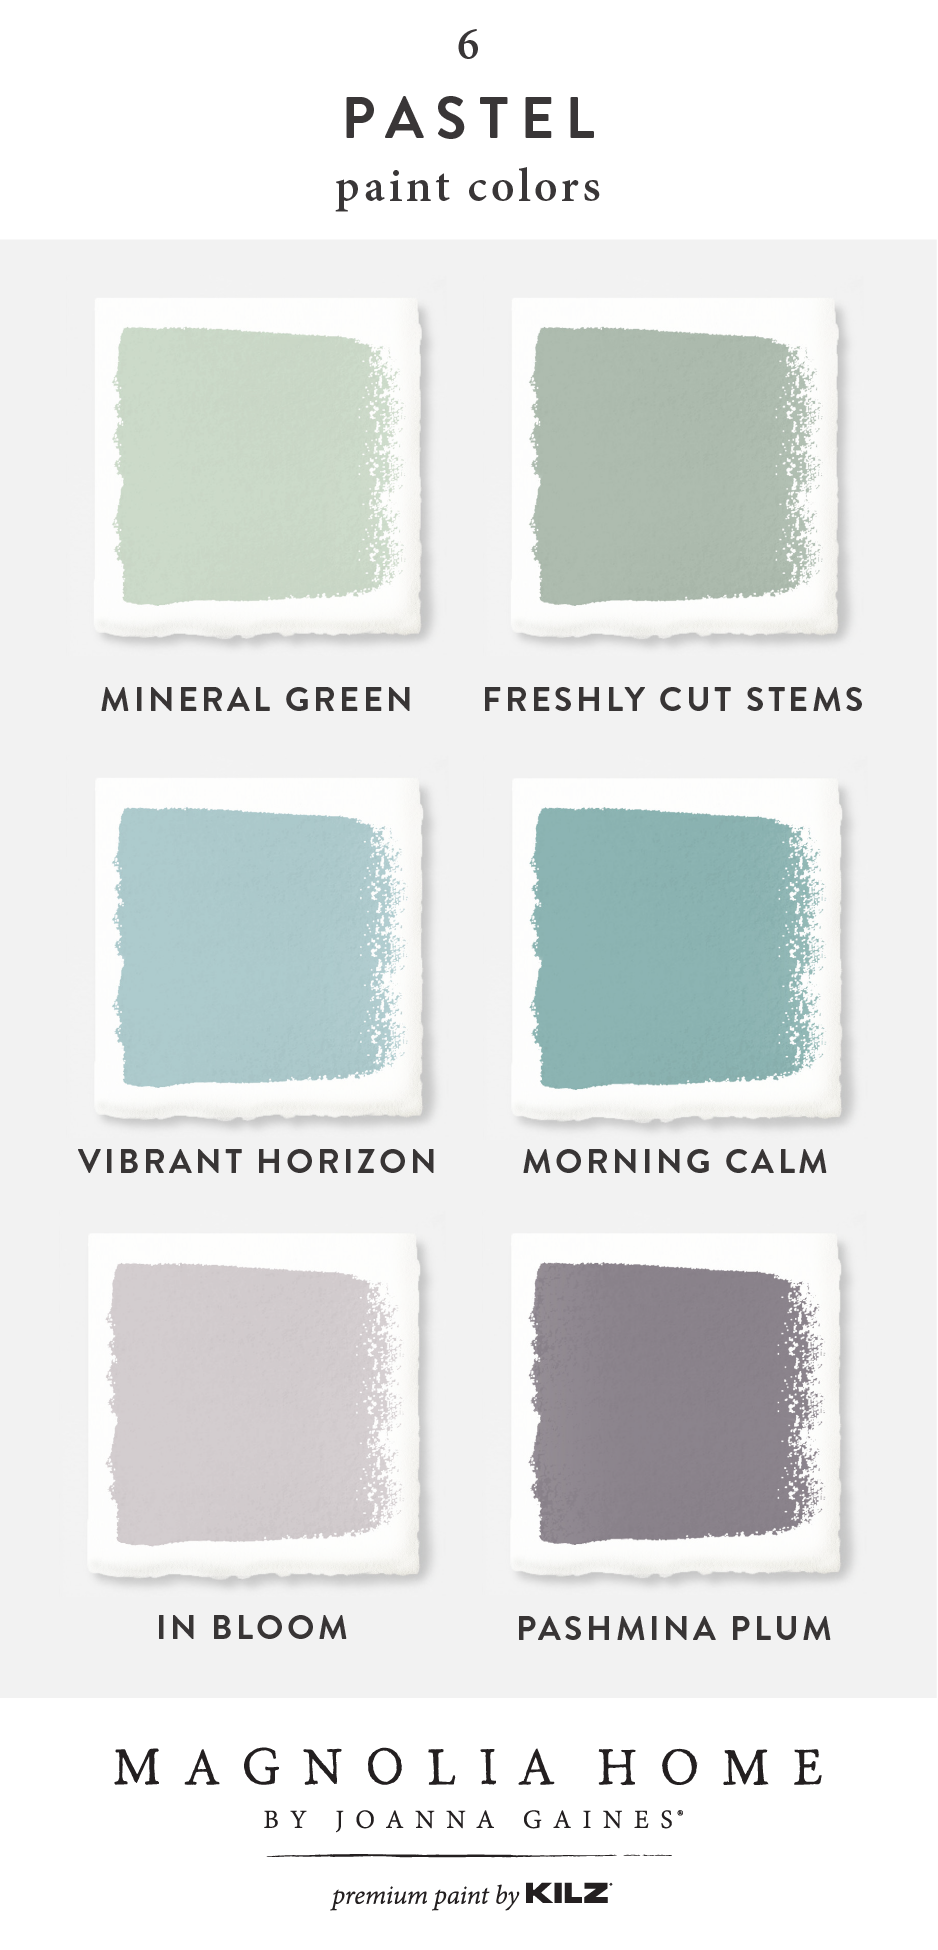 Add A Splash Of Pastel Color To The Interior Design Of Your Home With This Color Palette From The M Purple Paint Colors Joanna Gaines Paint Pastel Paint Colors